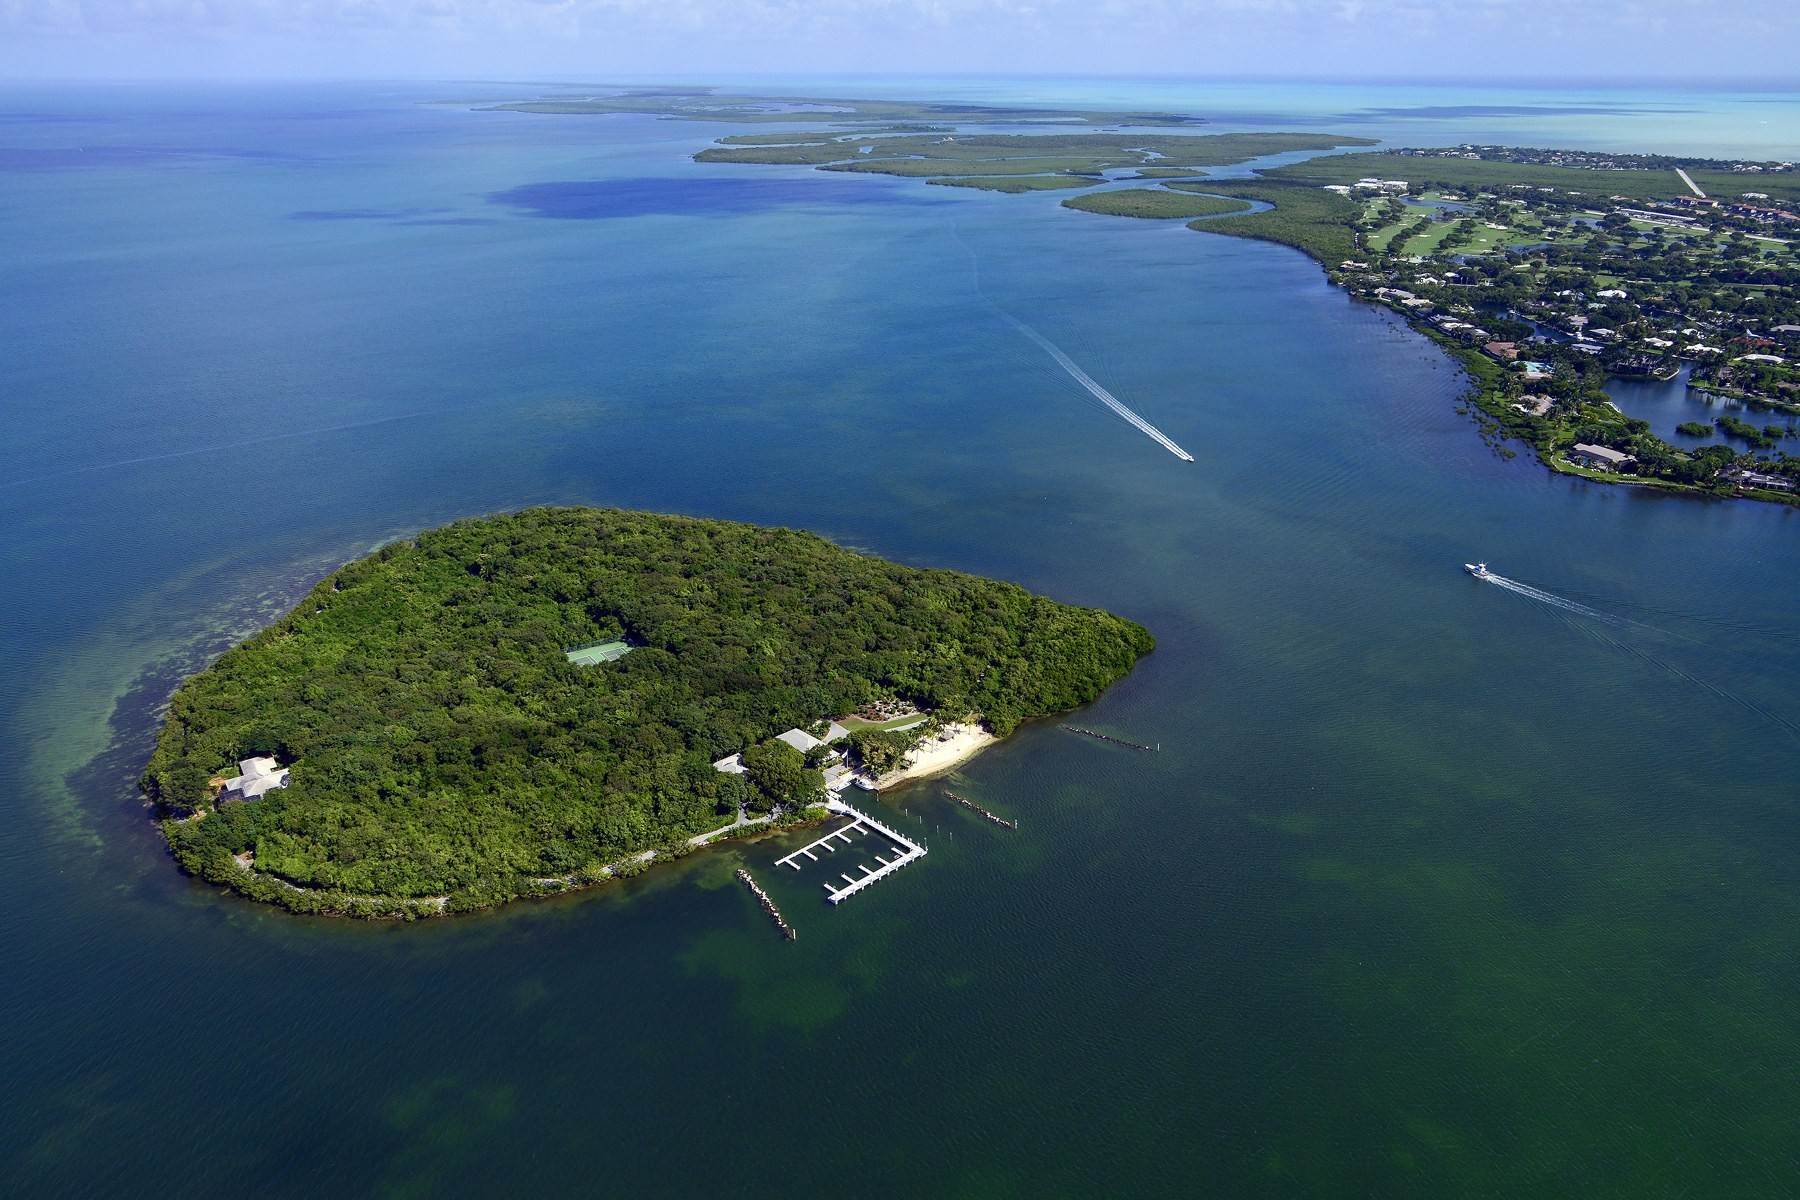 Property for Sale at Pumpkin Key - Private Island, Key Largo, FL Ocean Reef Club, Key Largo, Florida, 33037 United States